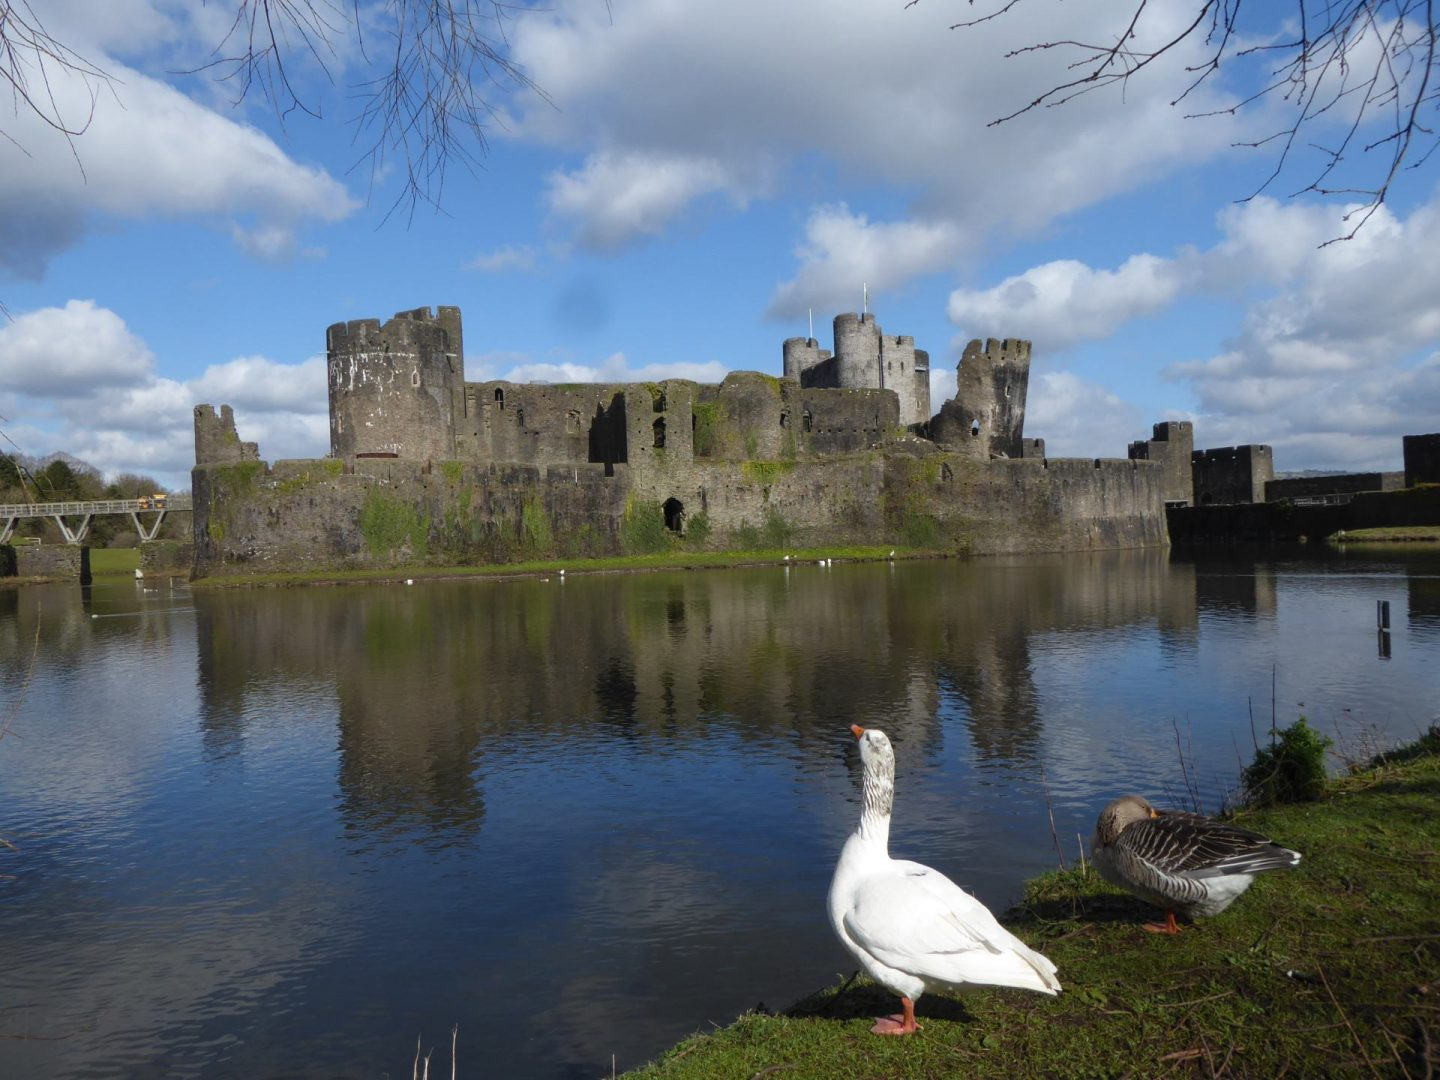 Caerphilly Castle across water. Ducks in foreground.